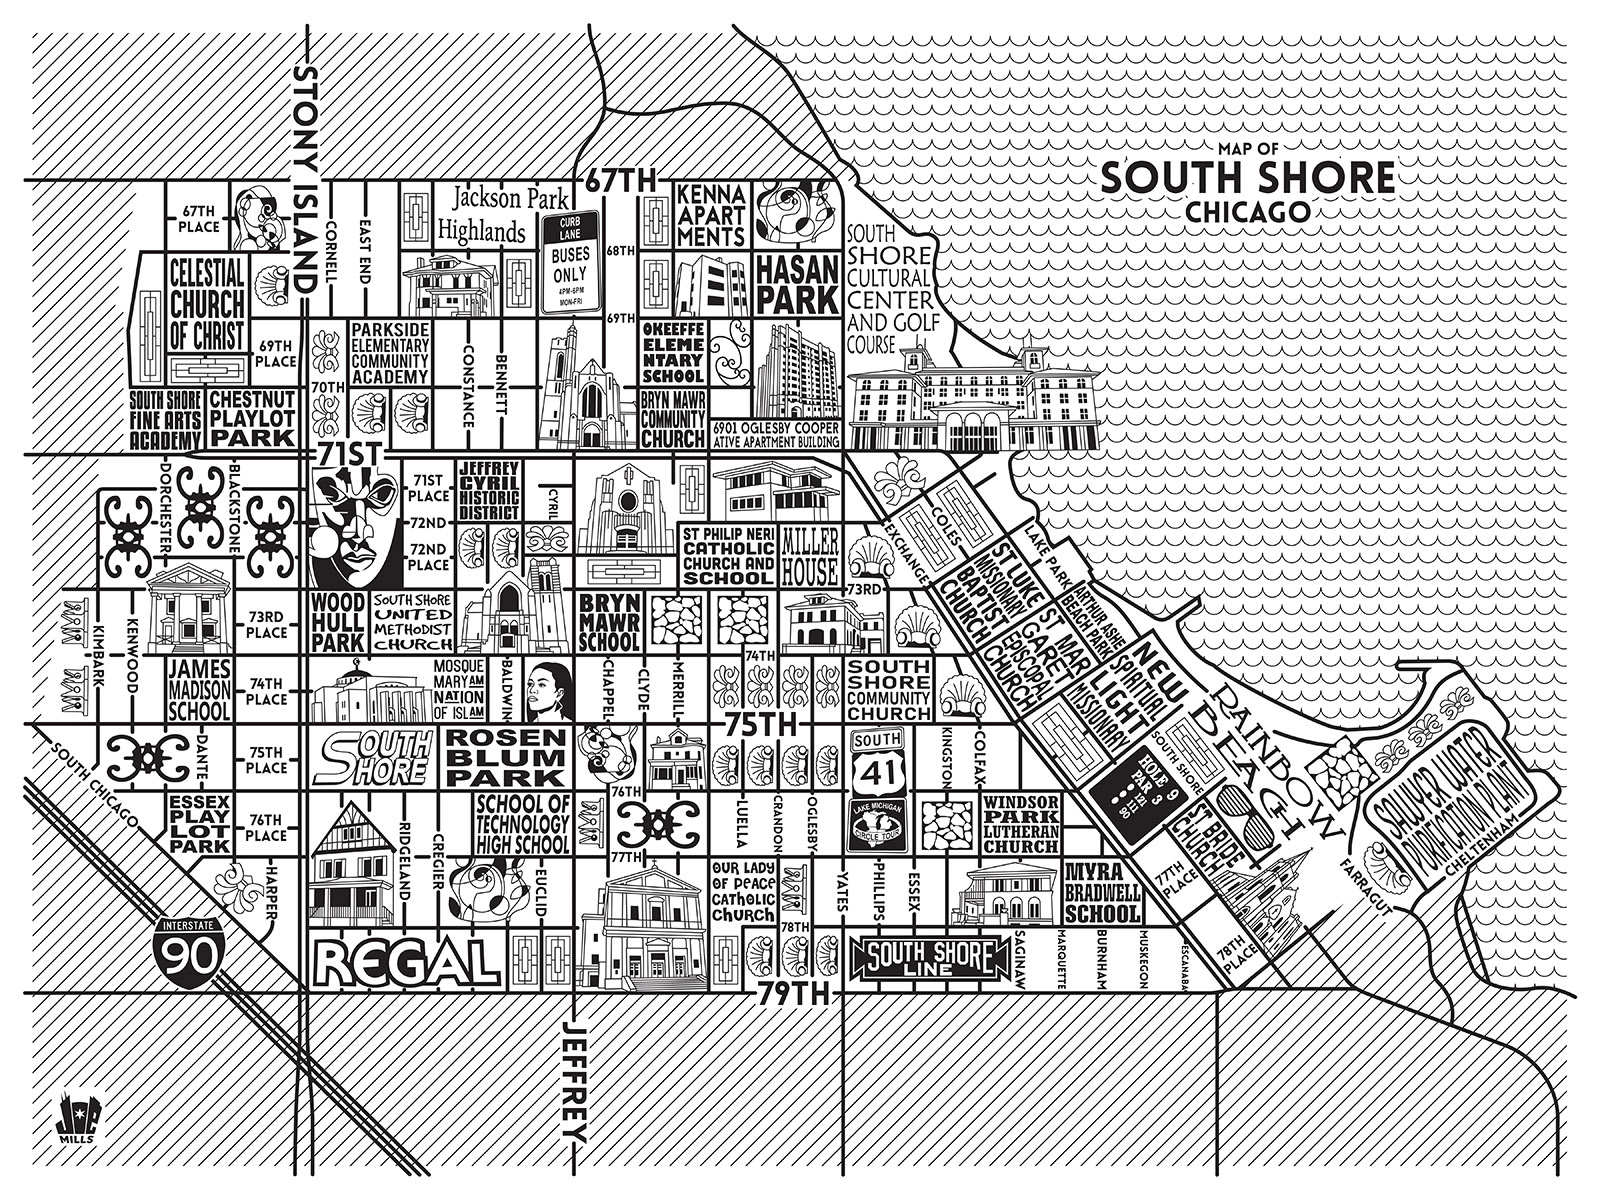 South Shore Map -  Purchase a map here